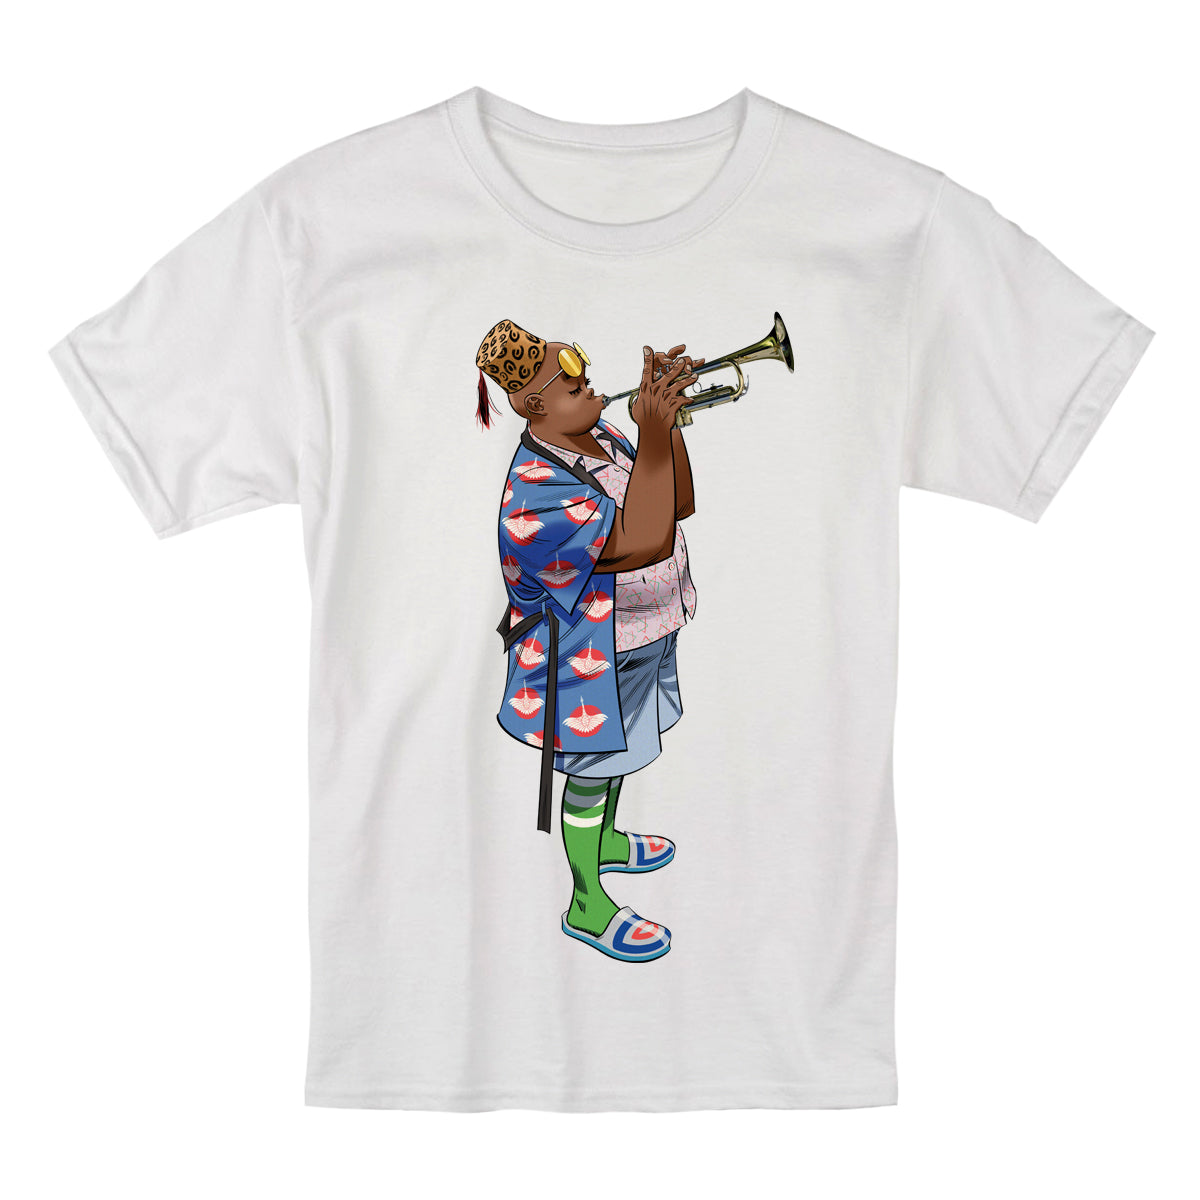 SONG MACHINE RUSSEL T-SHIRT